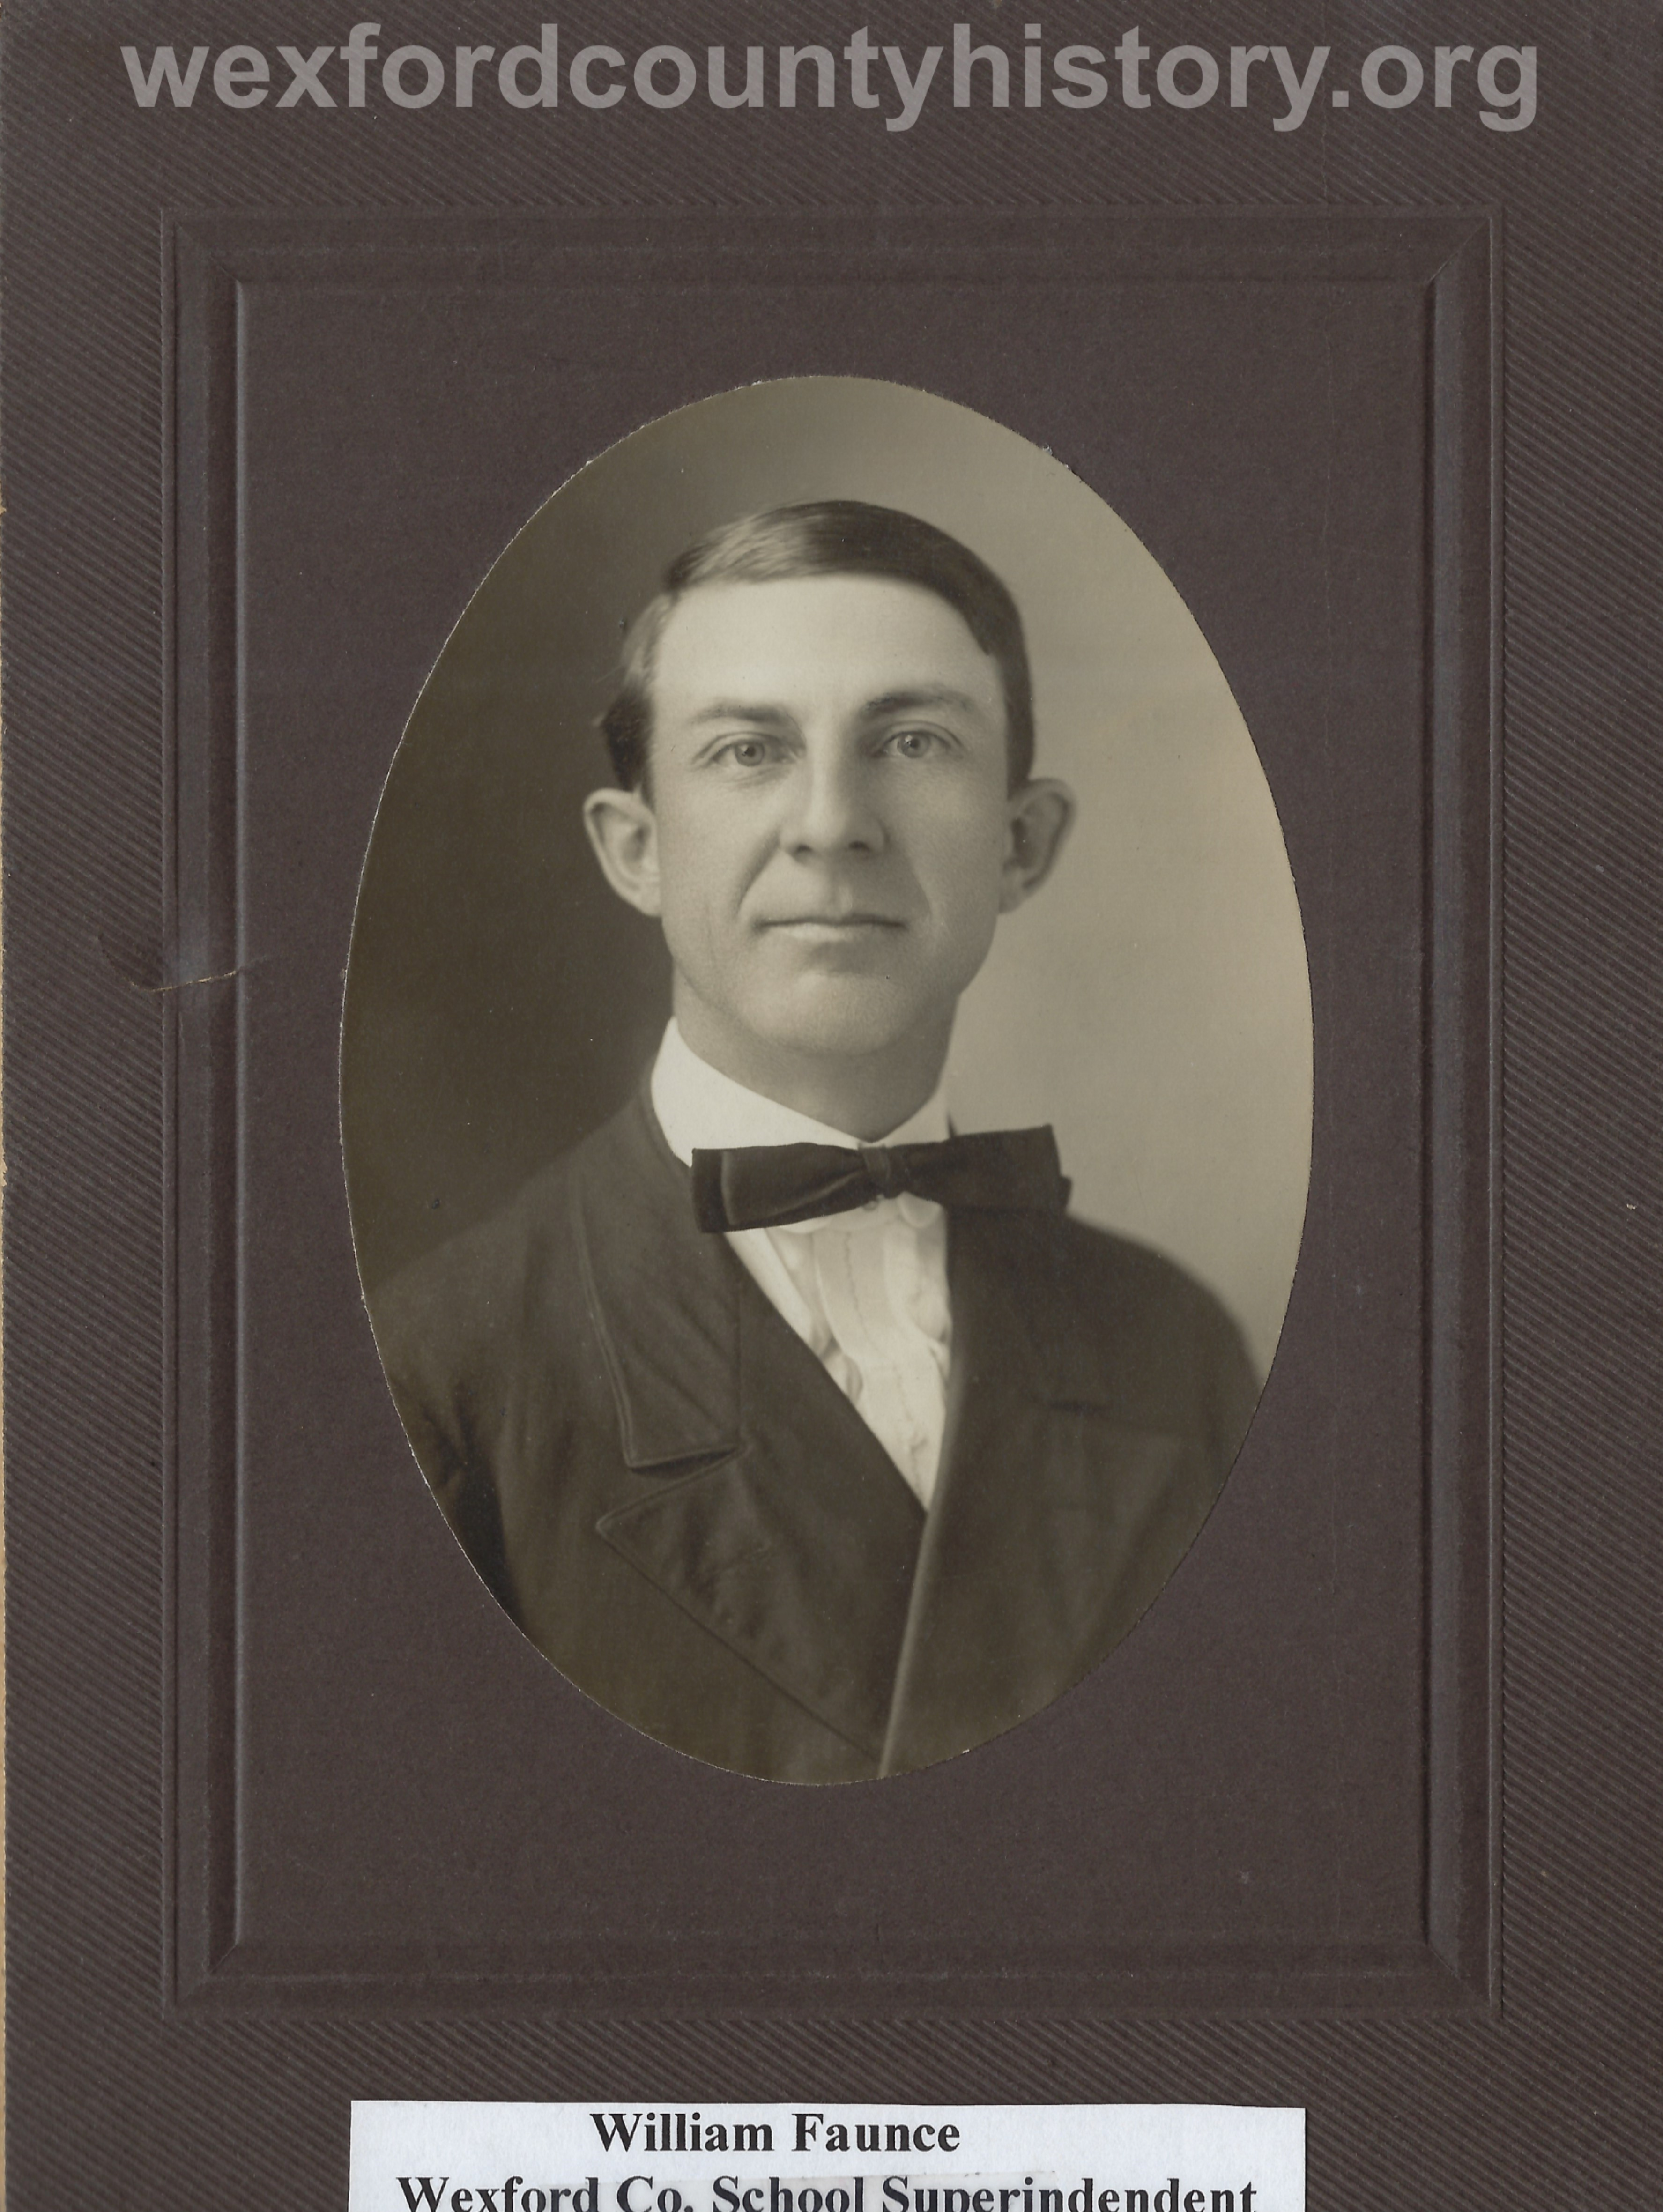 Cadillac-School-William-Faunce-Wexford-County-Schools-Superintendent